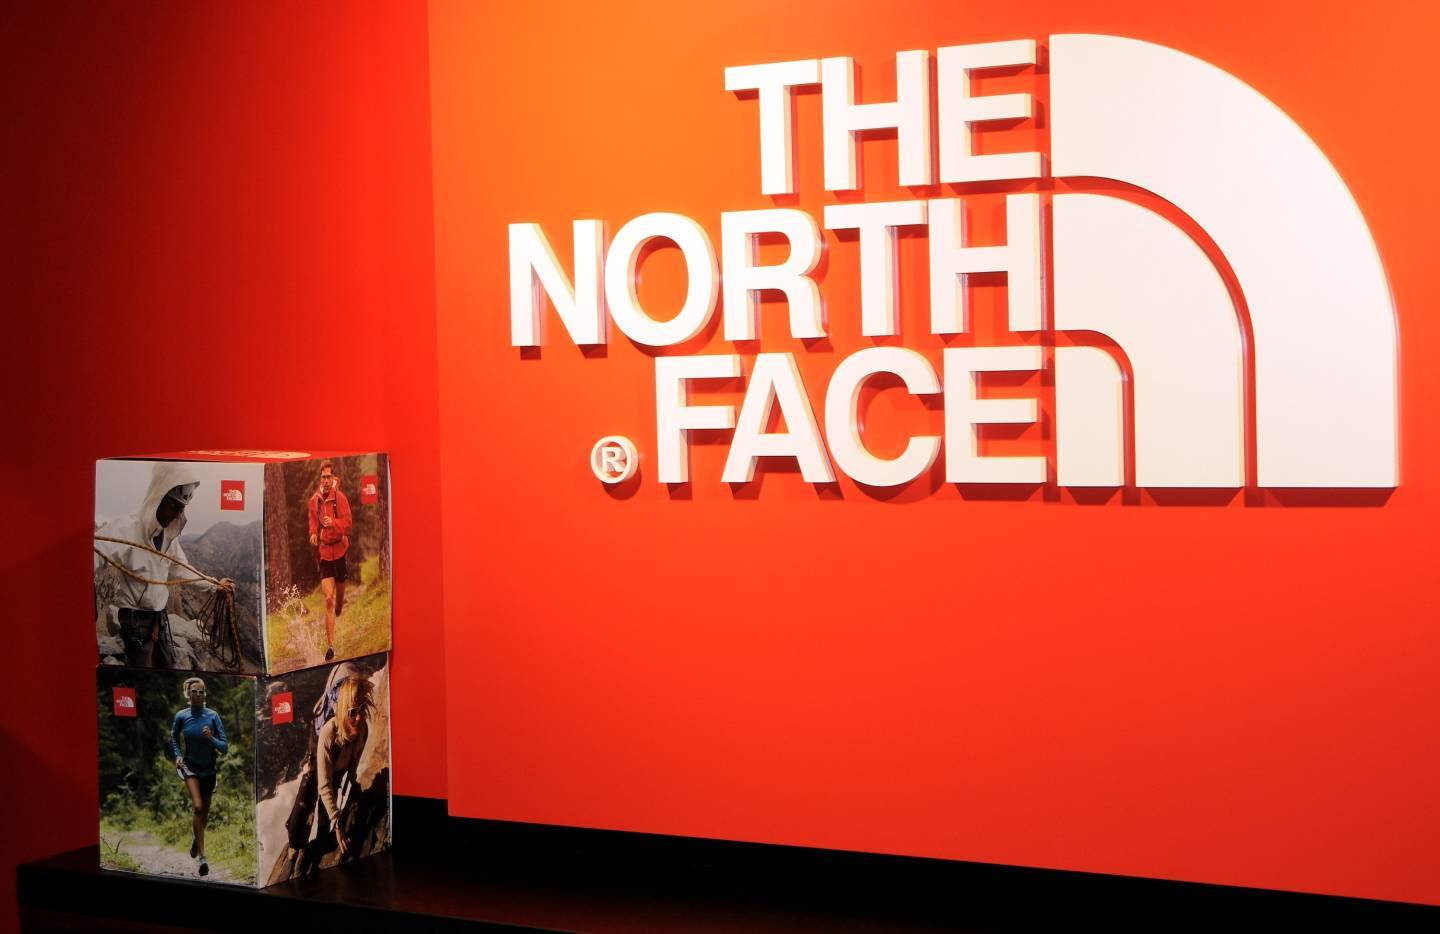 The North Face is to open a store in Aberdeen's Union Square